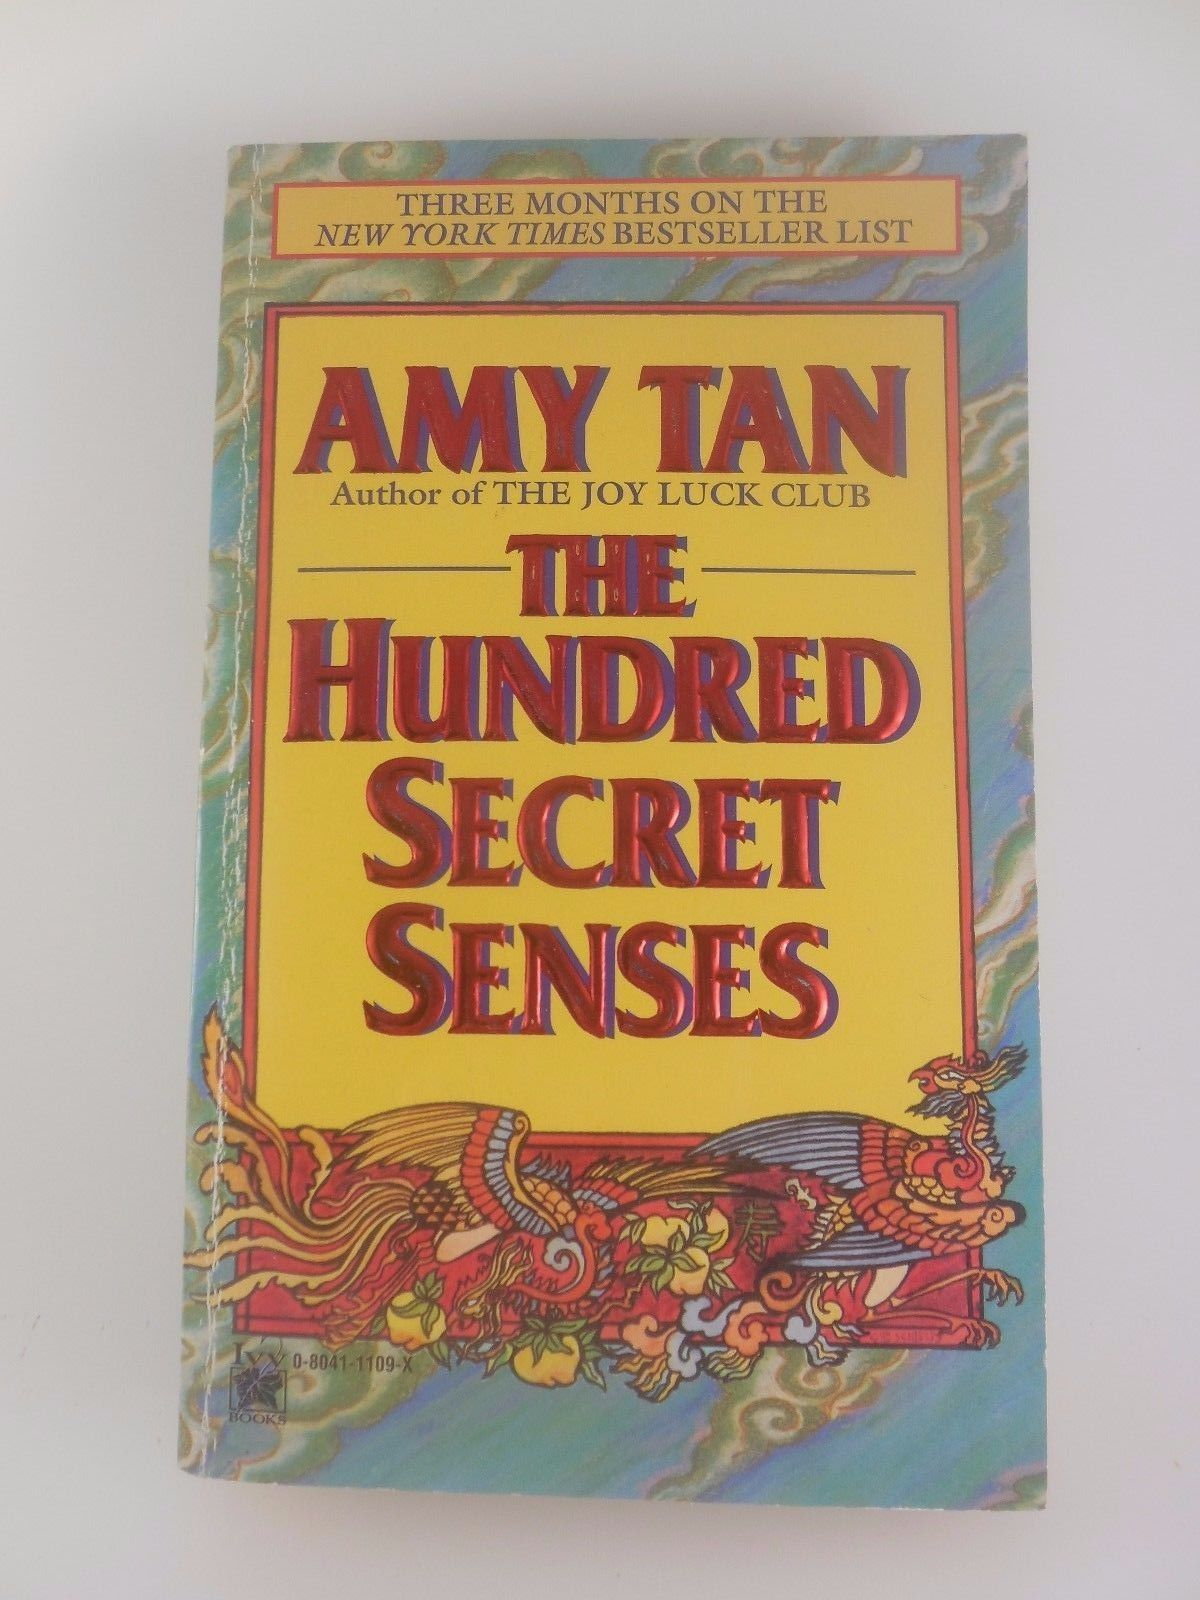 an overview of amy tans book the hundred secret senses We dream to give ourselves hope to stop dreaming - well, that's like saying you can never change your fate ― amy tan, the hundred secret senses.